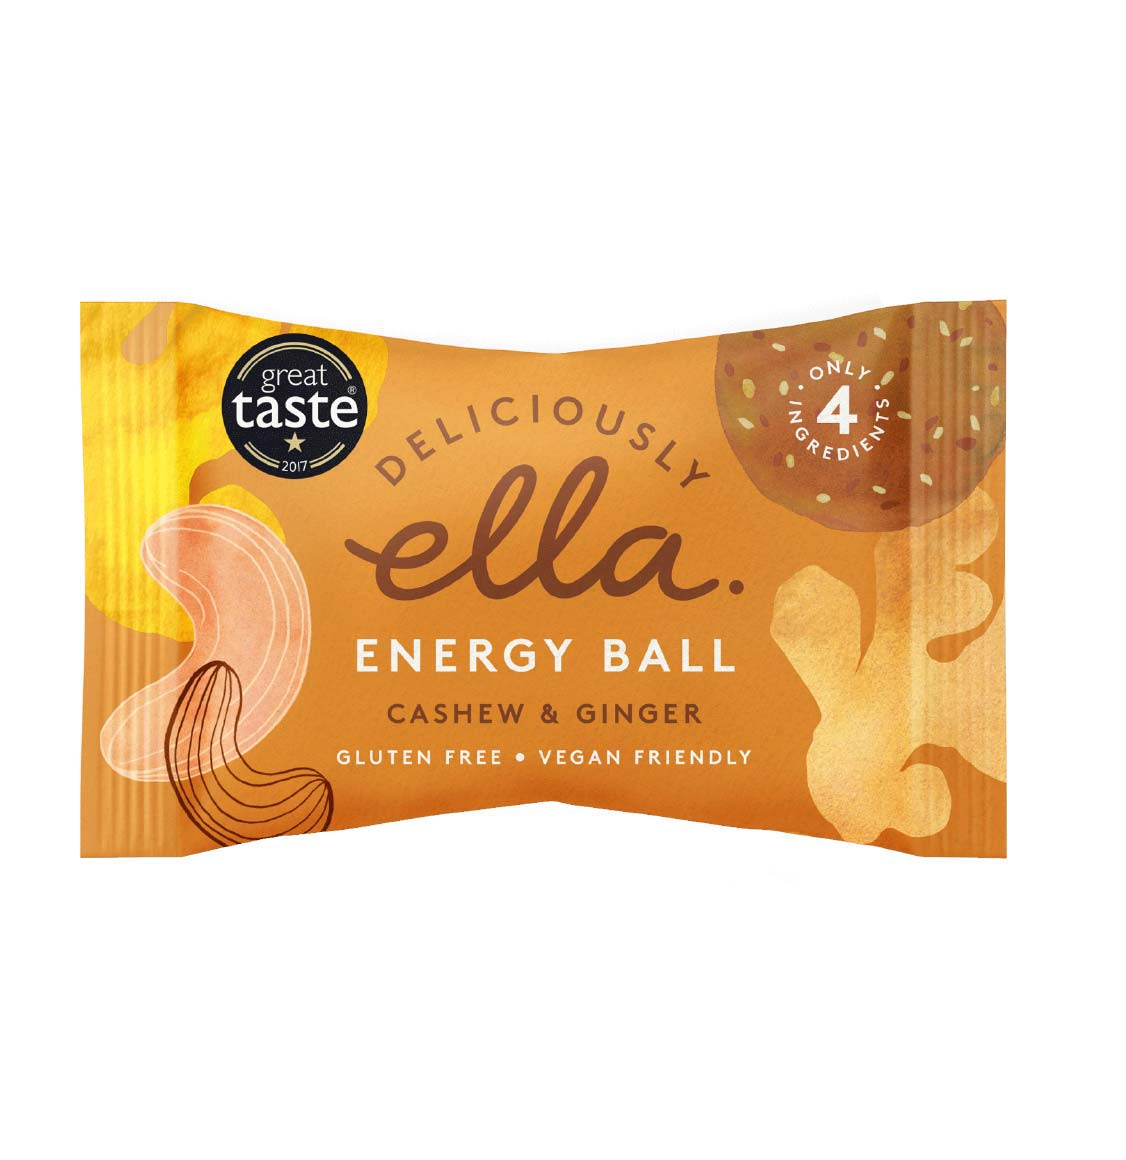 Deliciously Ella Cashew And Ginger Energy Ball 4 x 40g